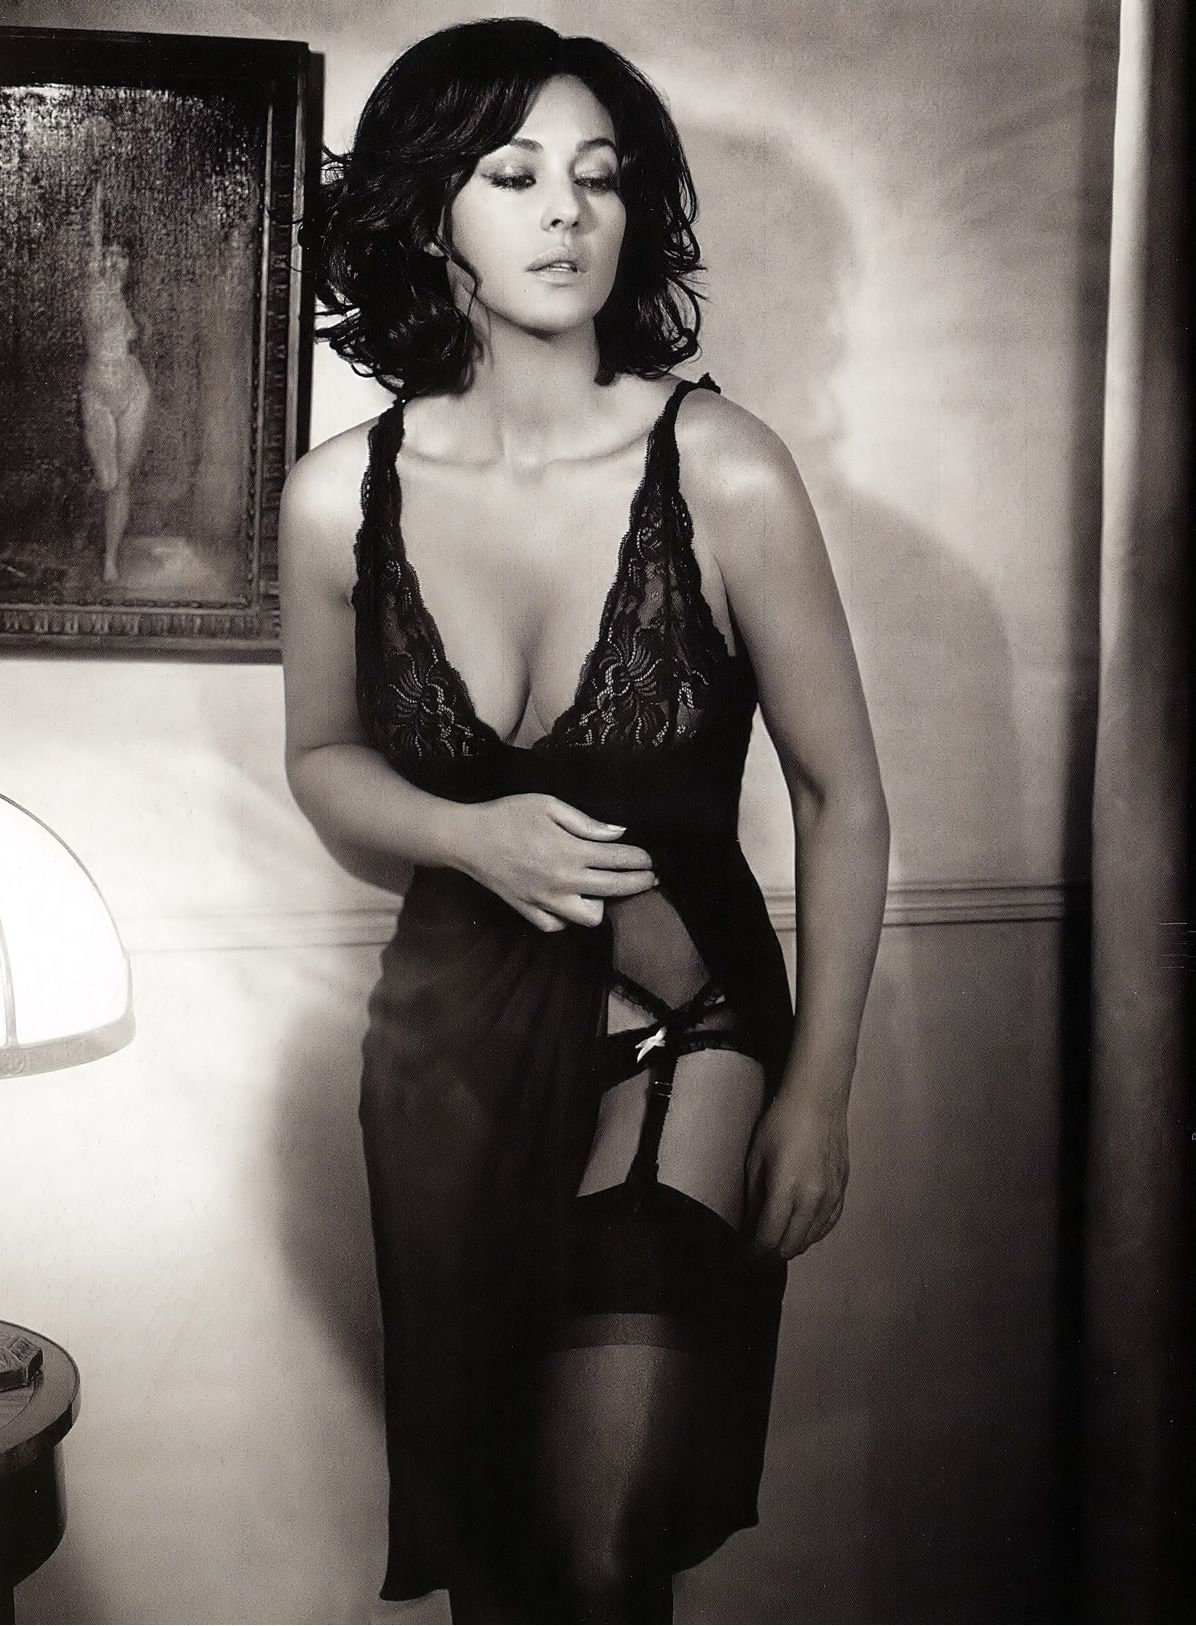 Penelope cruz lingerie speak this